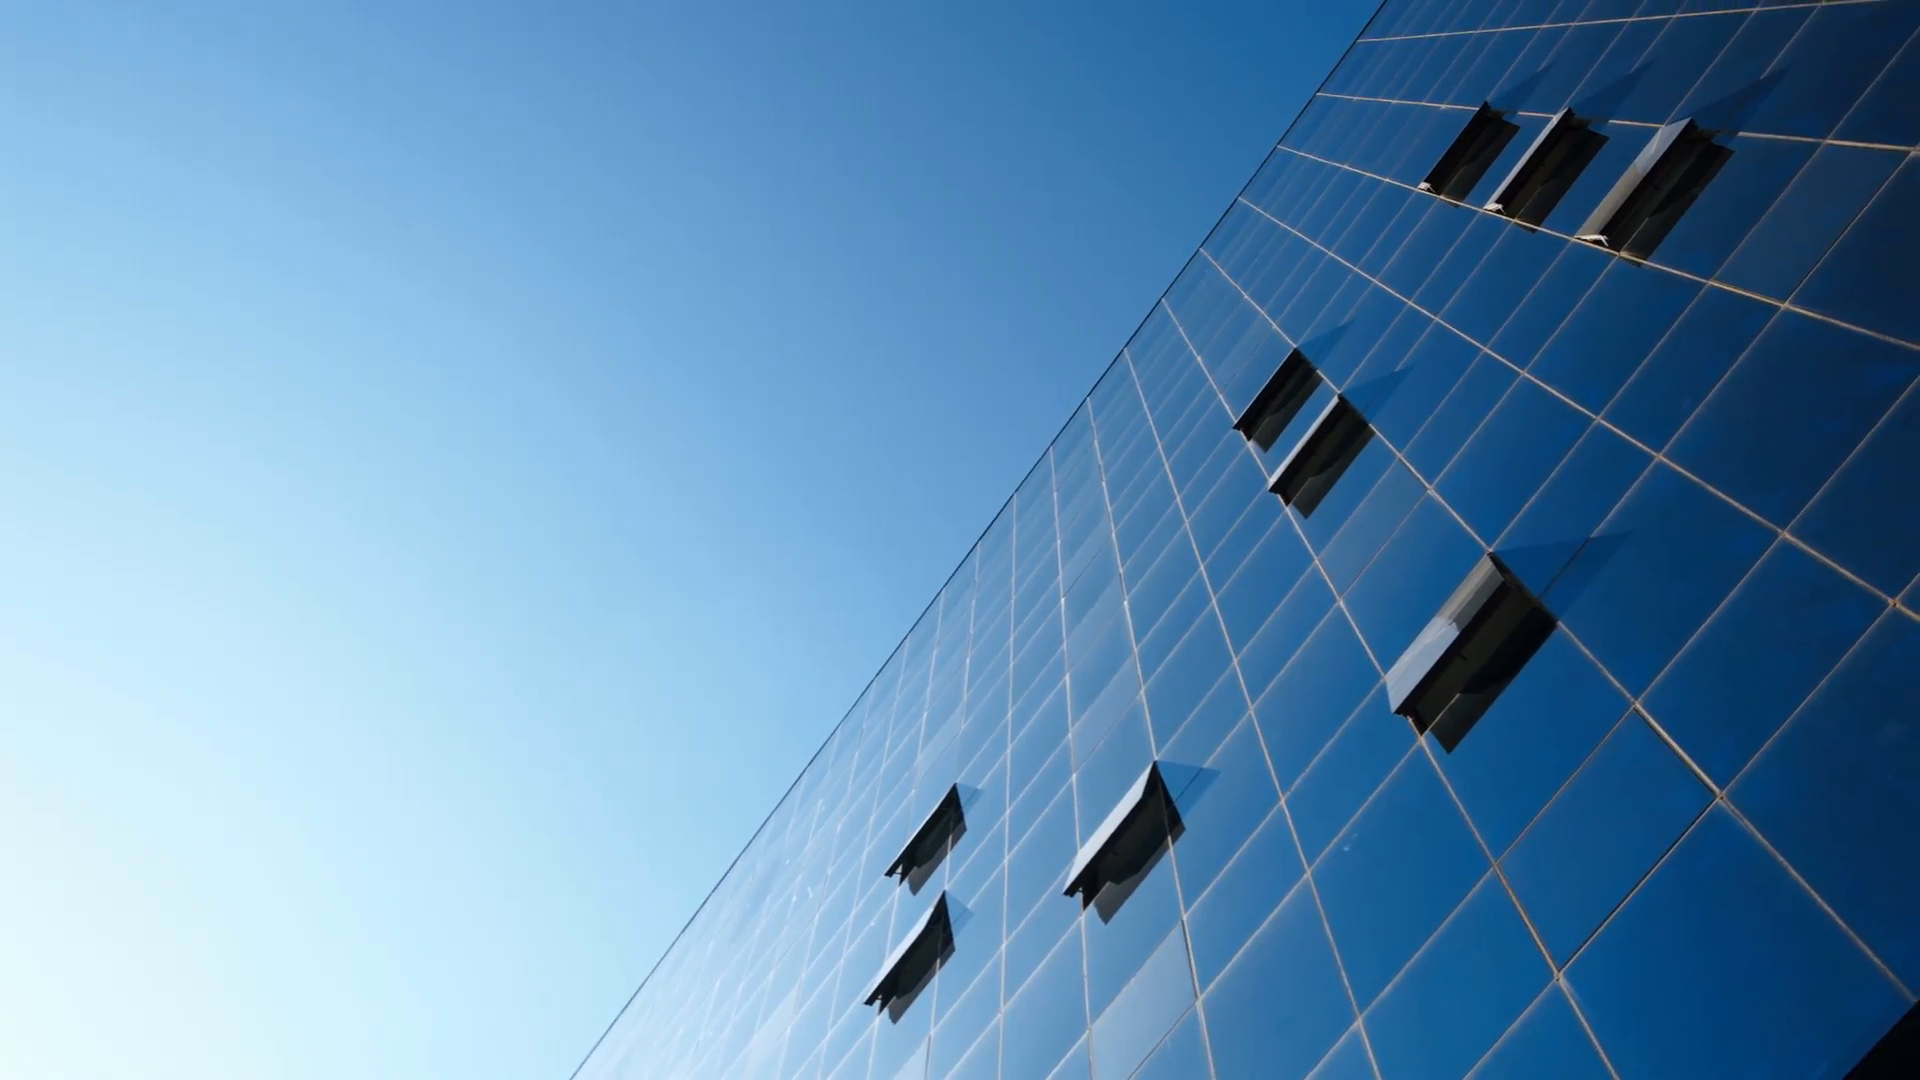 some-open-windows-in-an-office-building-with-the-blue-sky-as-background-and-a-glass-facade-camera-pan-movement-from-the-left-side_4jomzq3u__F0000